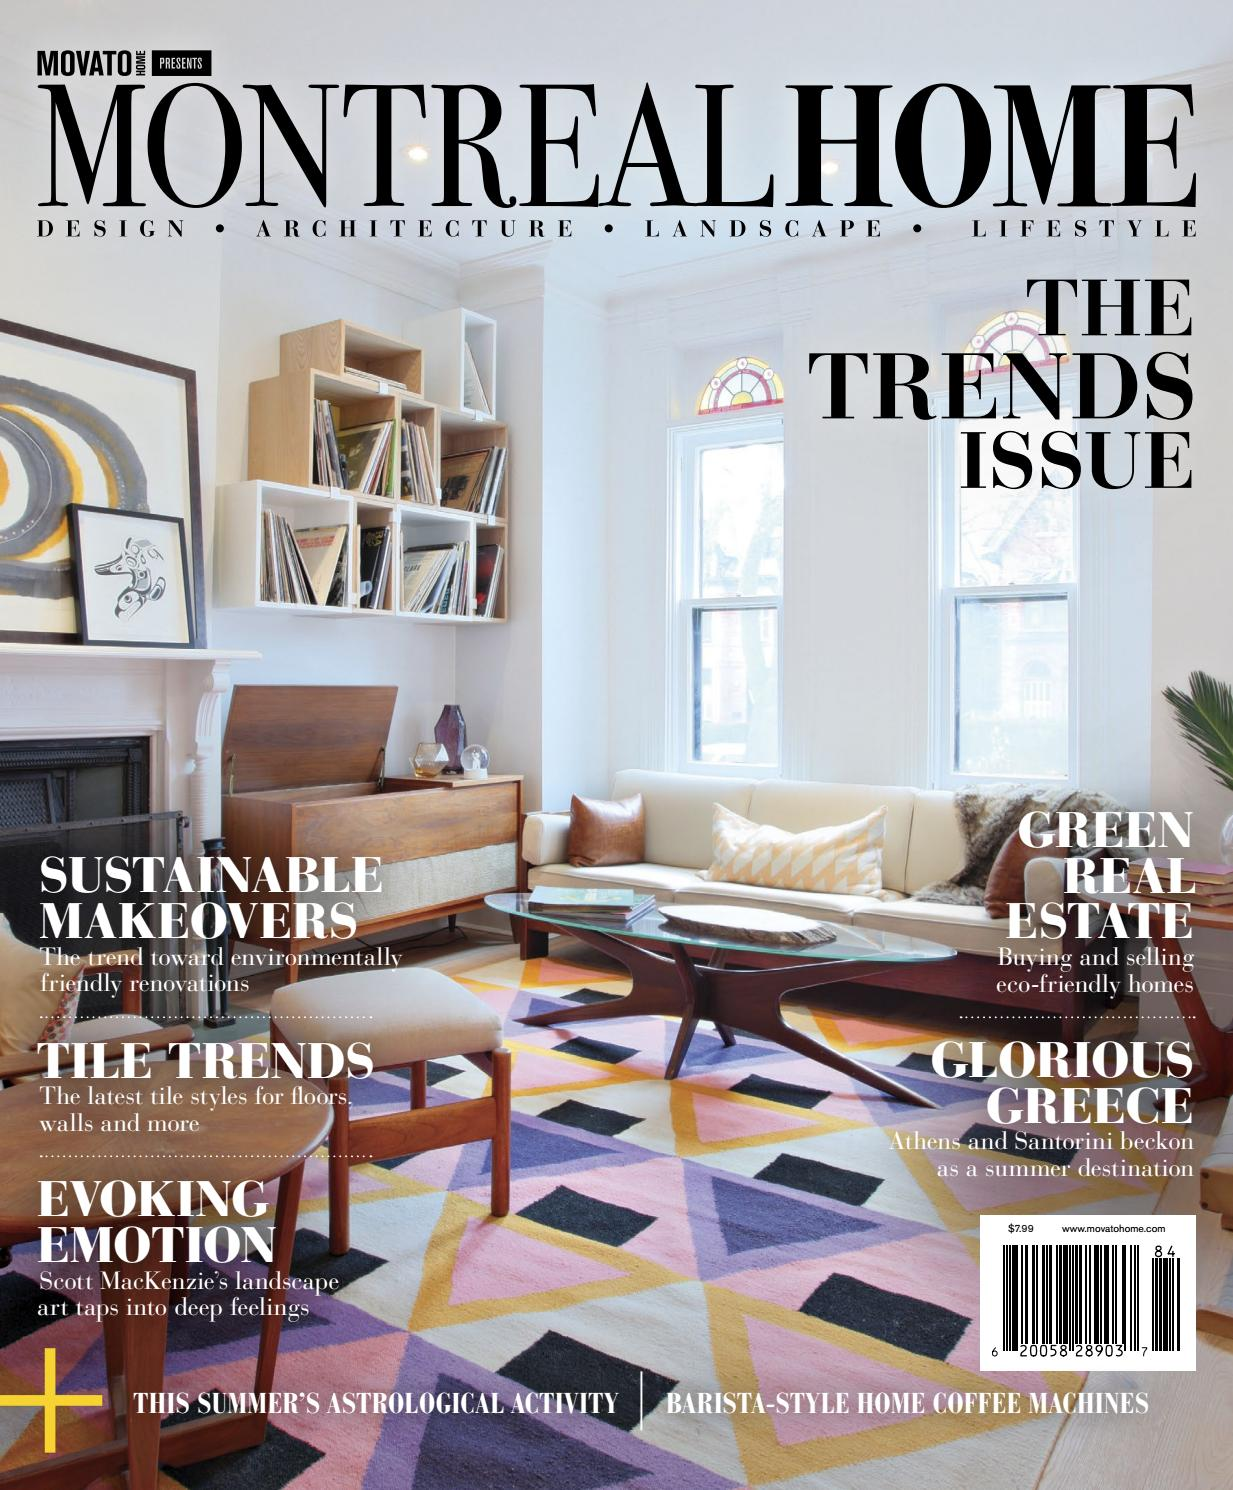 Montreal home trends 2018 by home in canada design ▫ architecture ▫ landscape ▫ lifestyle issuu